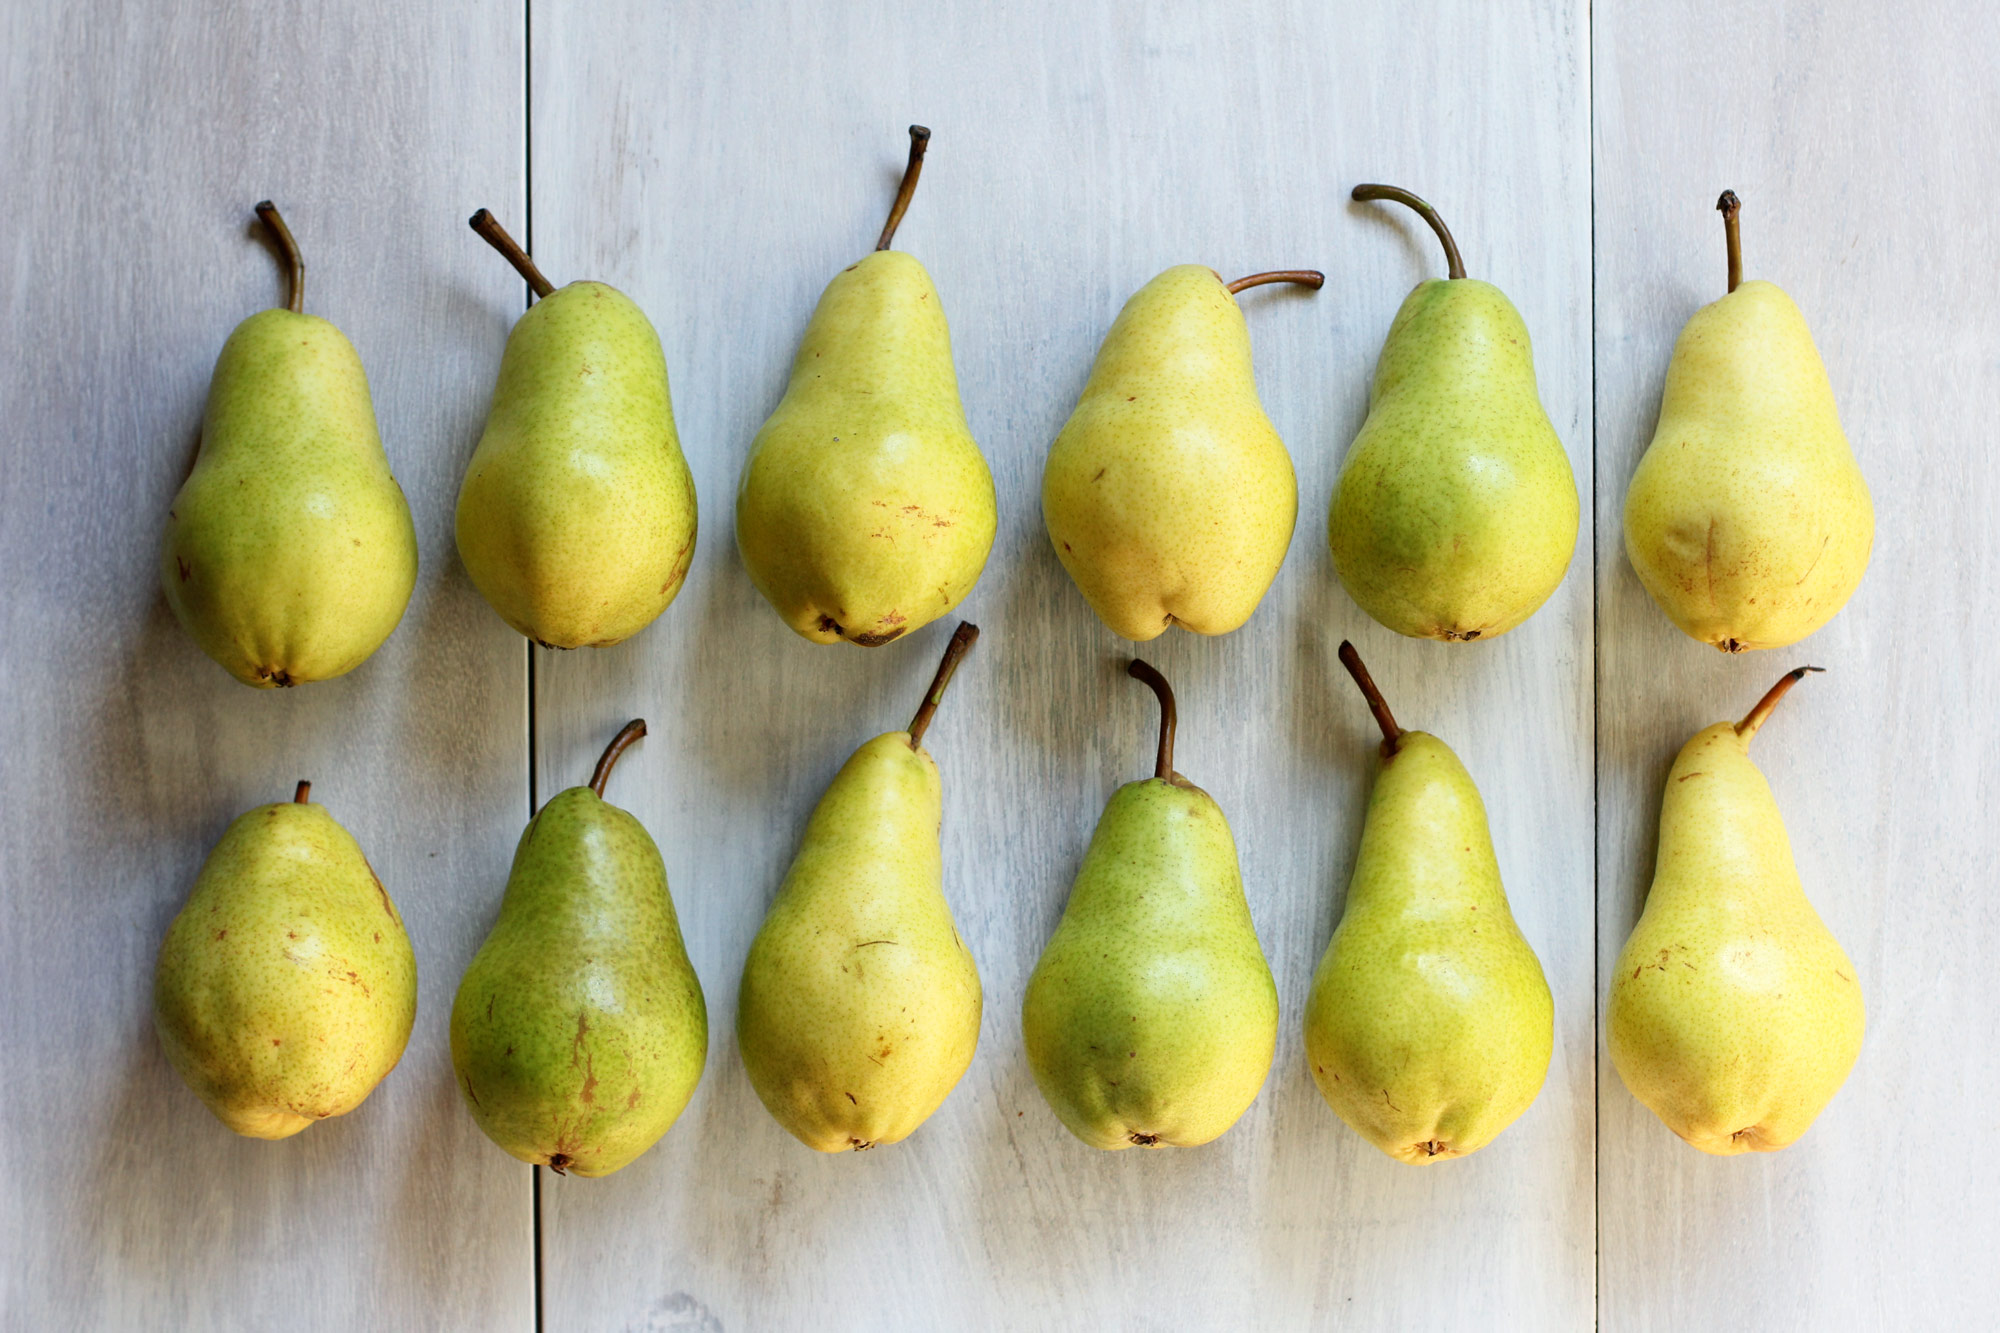 pears as a sugar subsitute